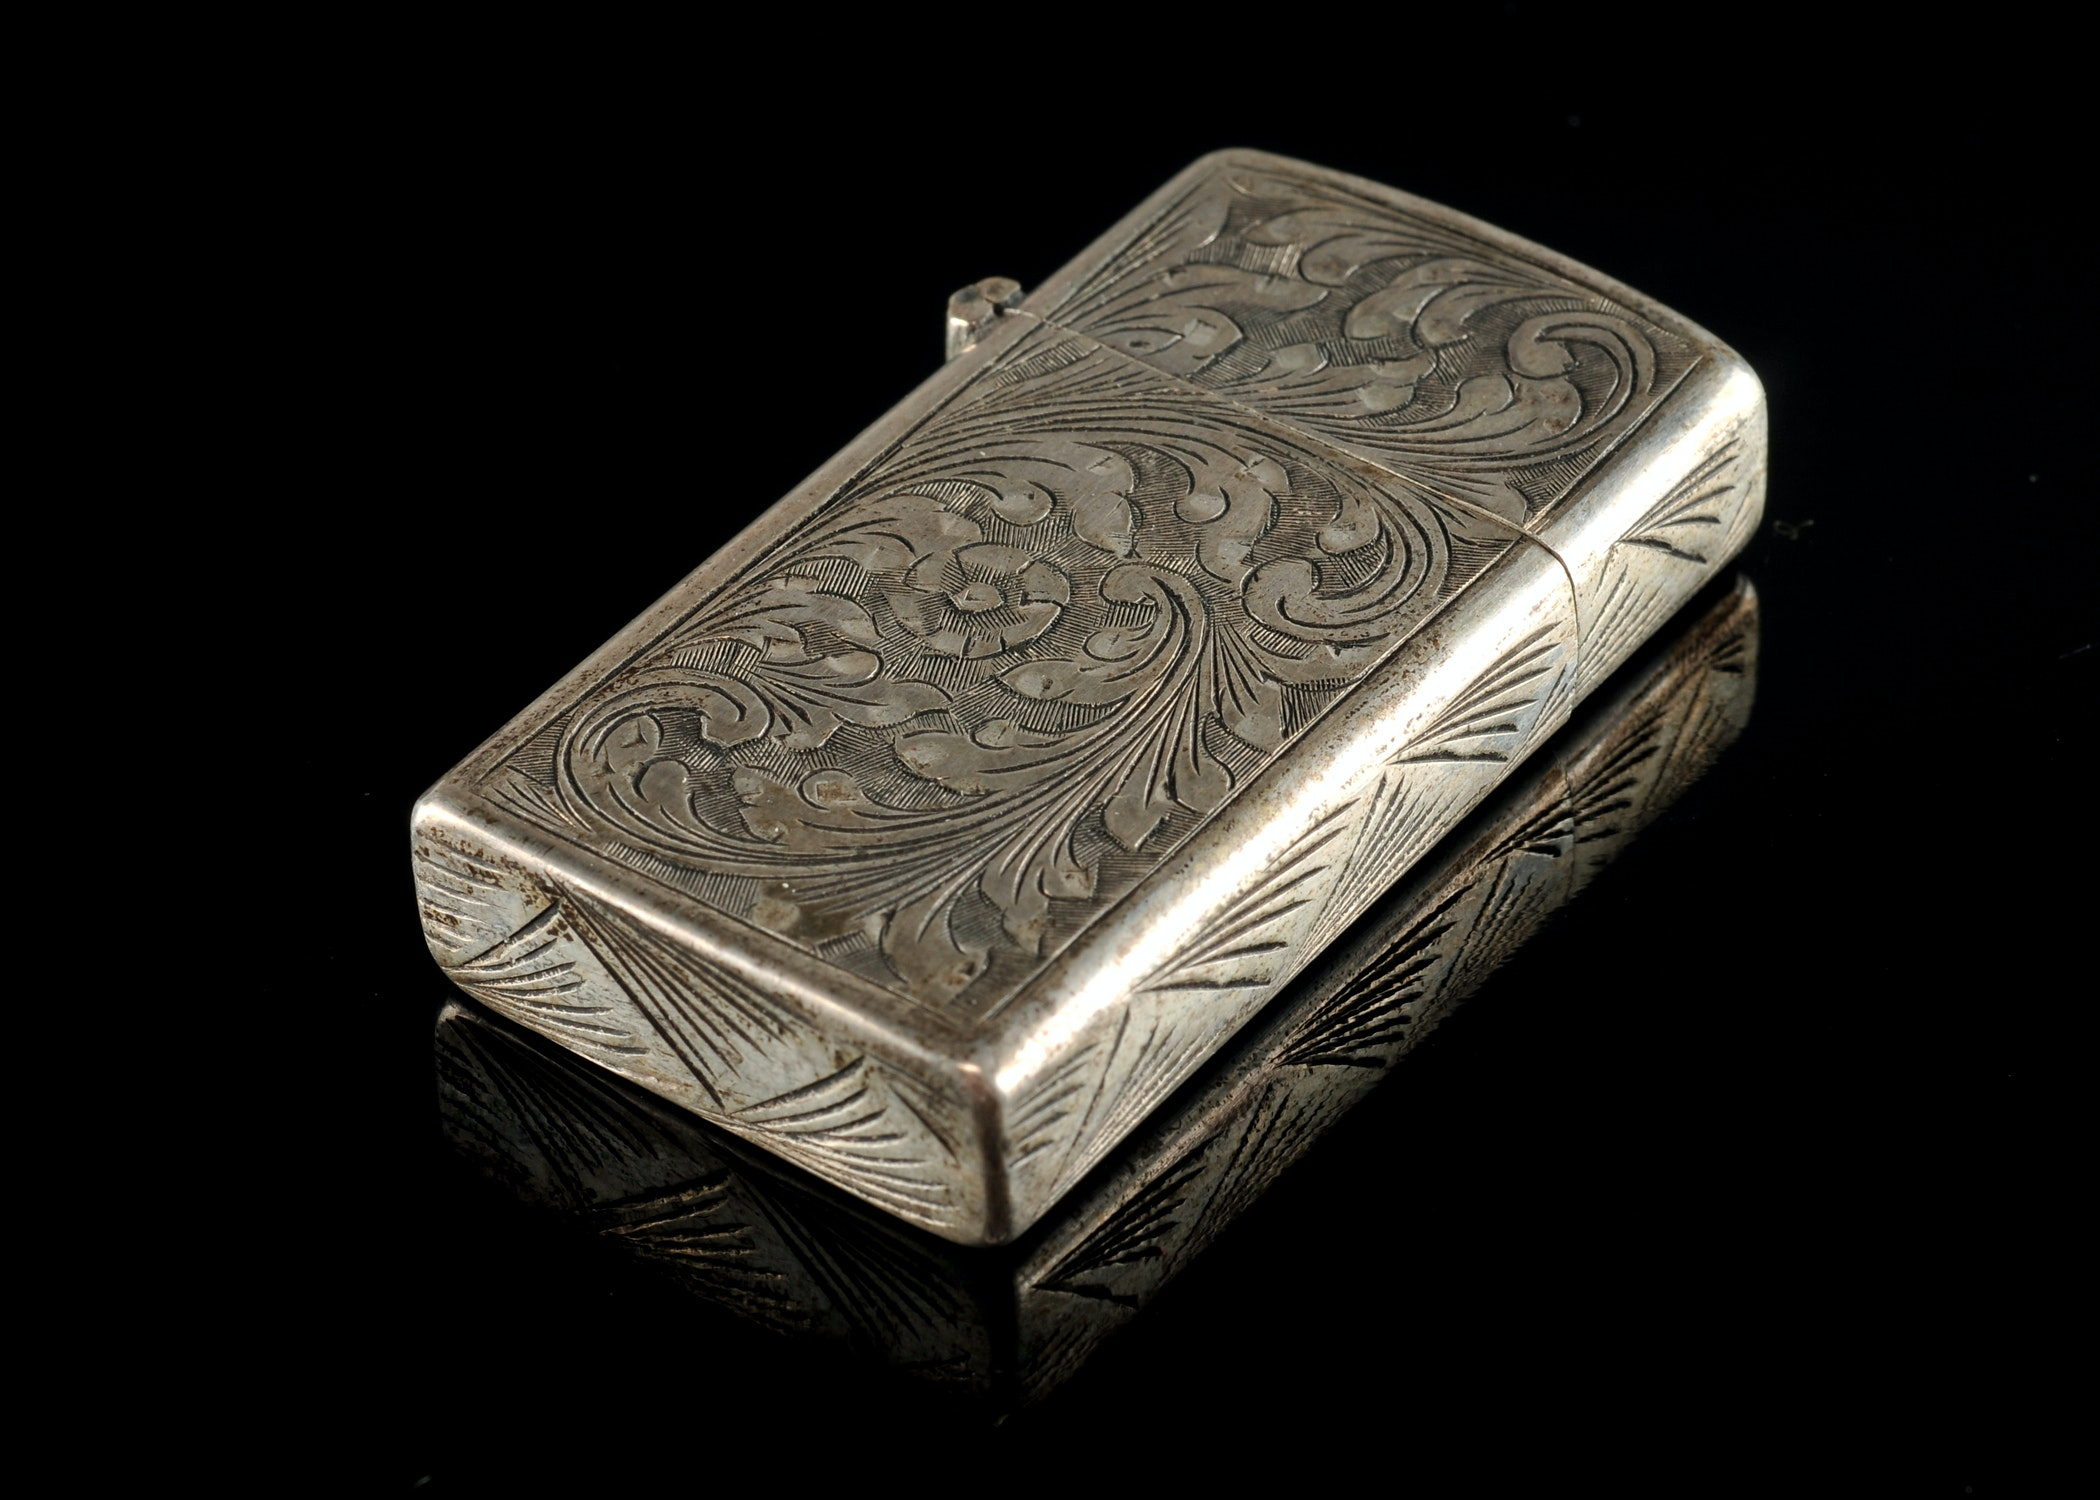 800 Silver Cigarette Lighter Case Ebth